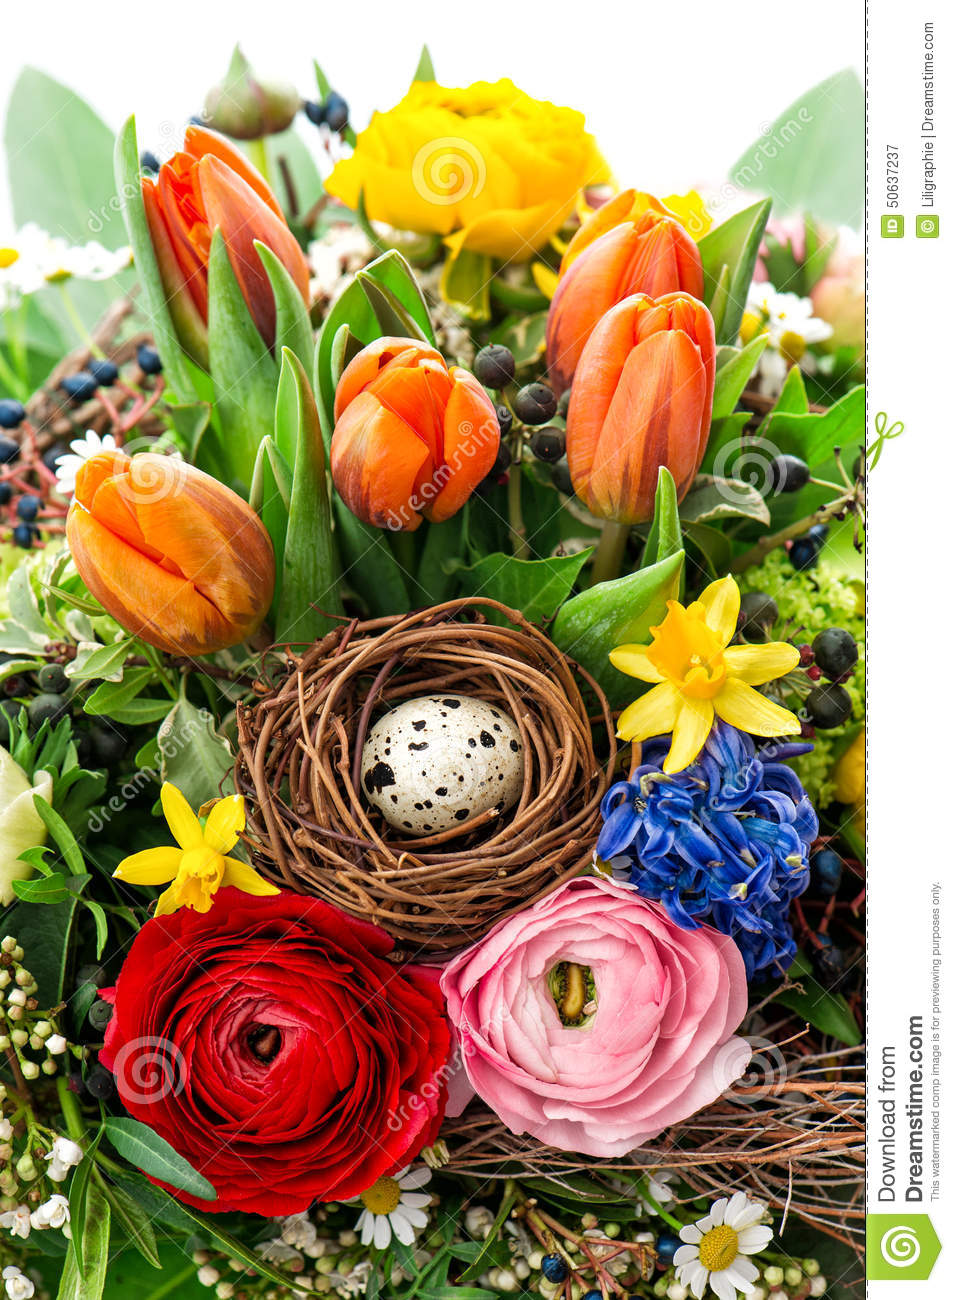 Easter Bouquet With Egg Decoration Spring Flowers Tulip Ranunculus Hyacinth Stock Image Image Of Beautiful Gerber 50637237